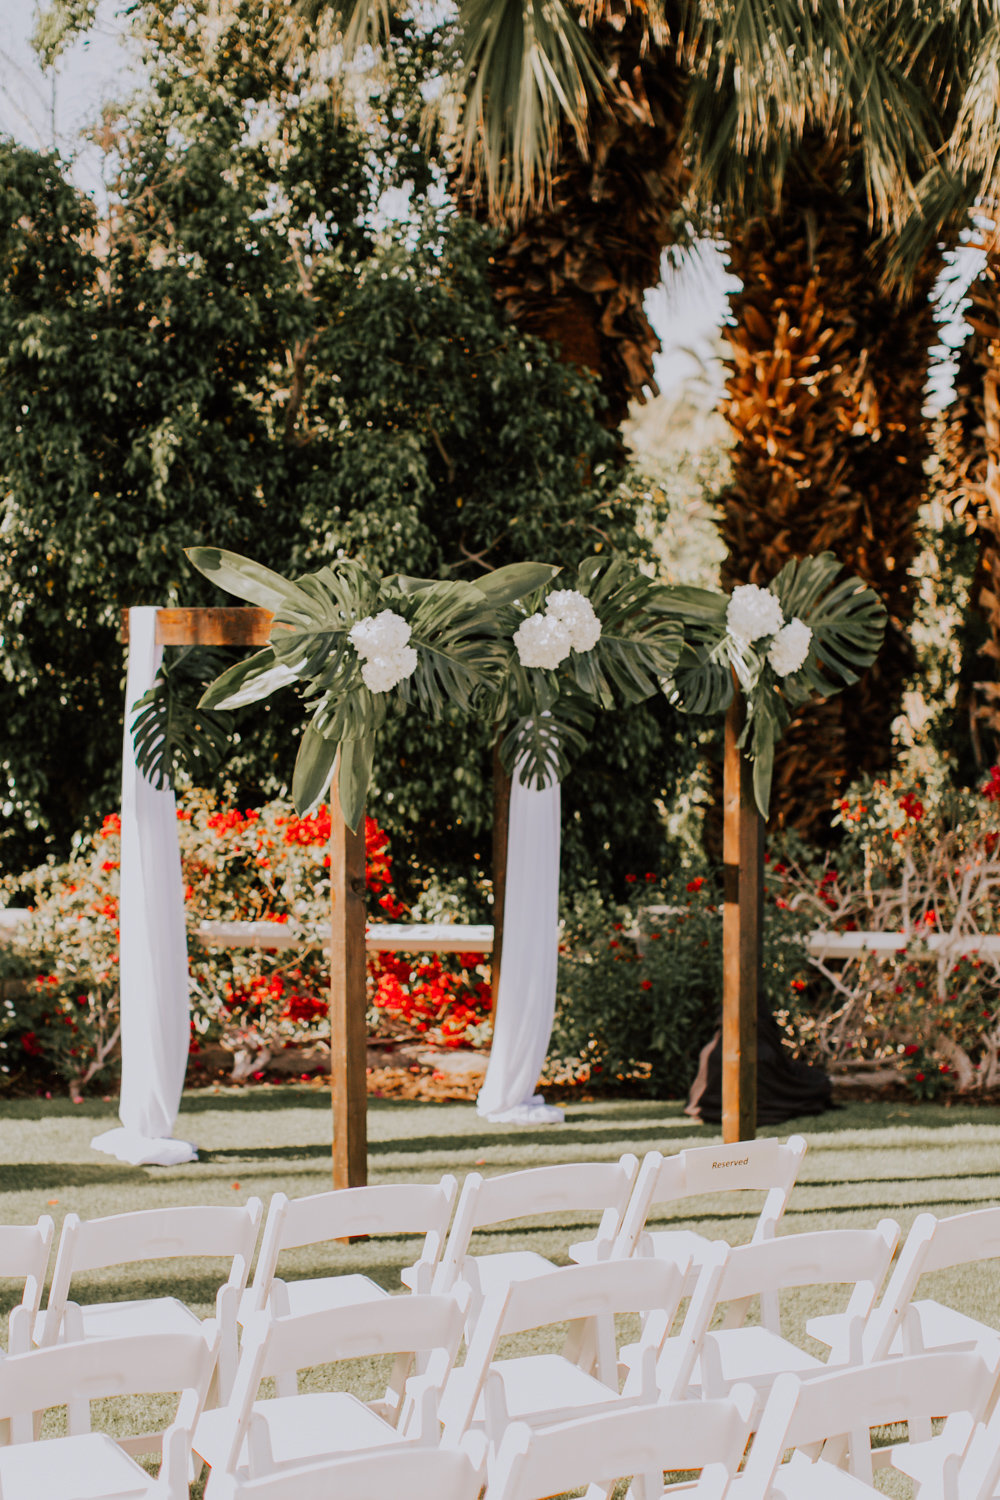 Brianna Broyles_Spencers Wedding_Palm Springs_Wedding Photographer-49